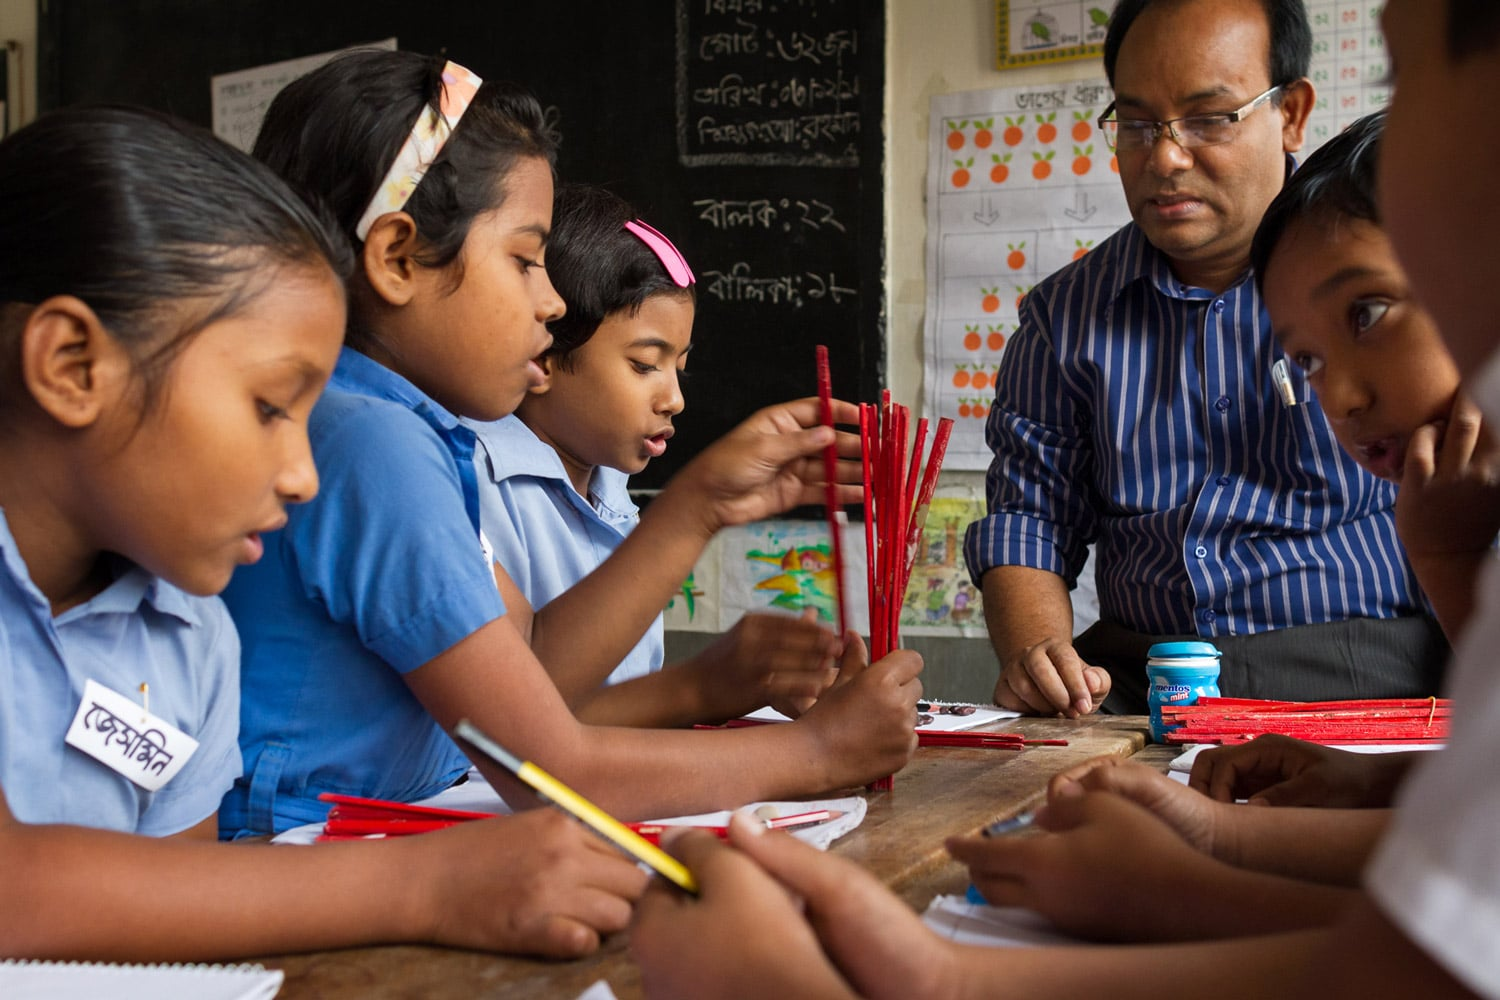 Shushmita works with her mathematics teacher and a group of students who are at the same level as her during maths class. ECL is currently being piloted in both Maths and Bangla but the approach will soon be expanded to include English and Environmental Science.